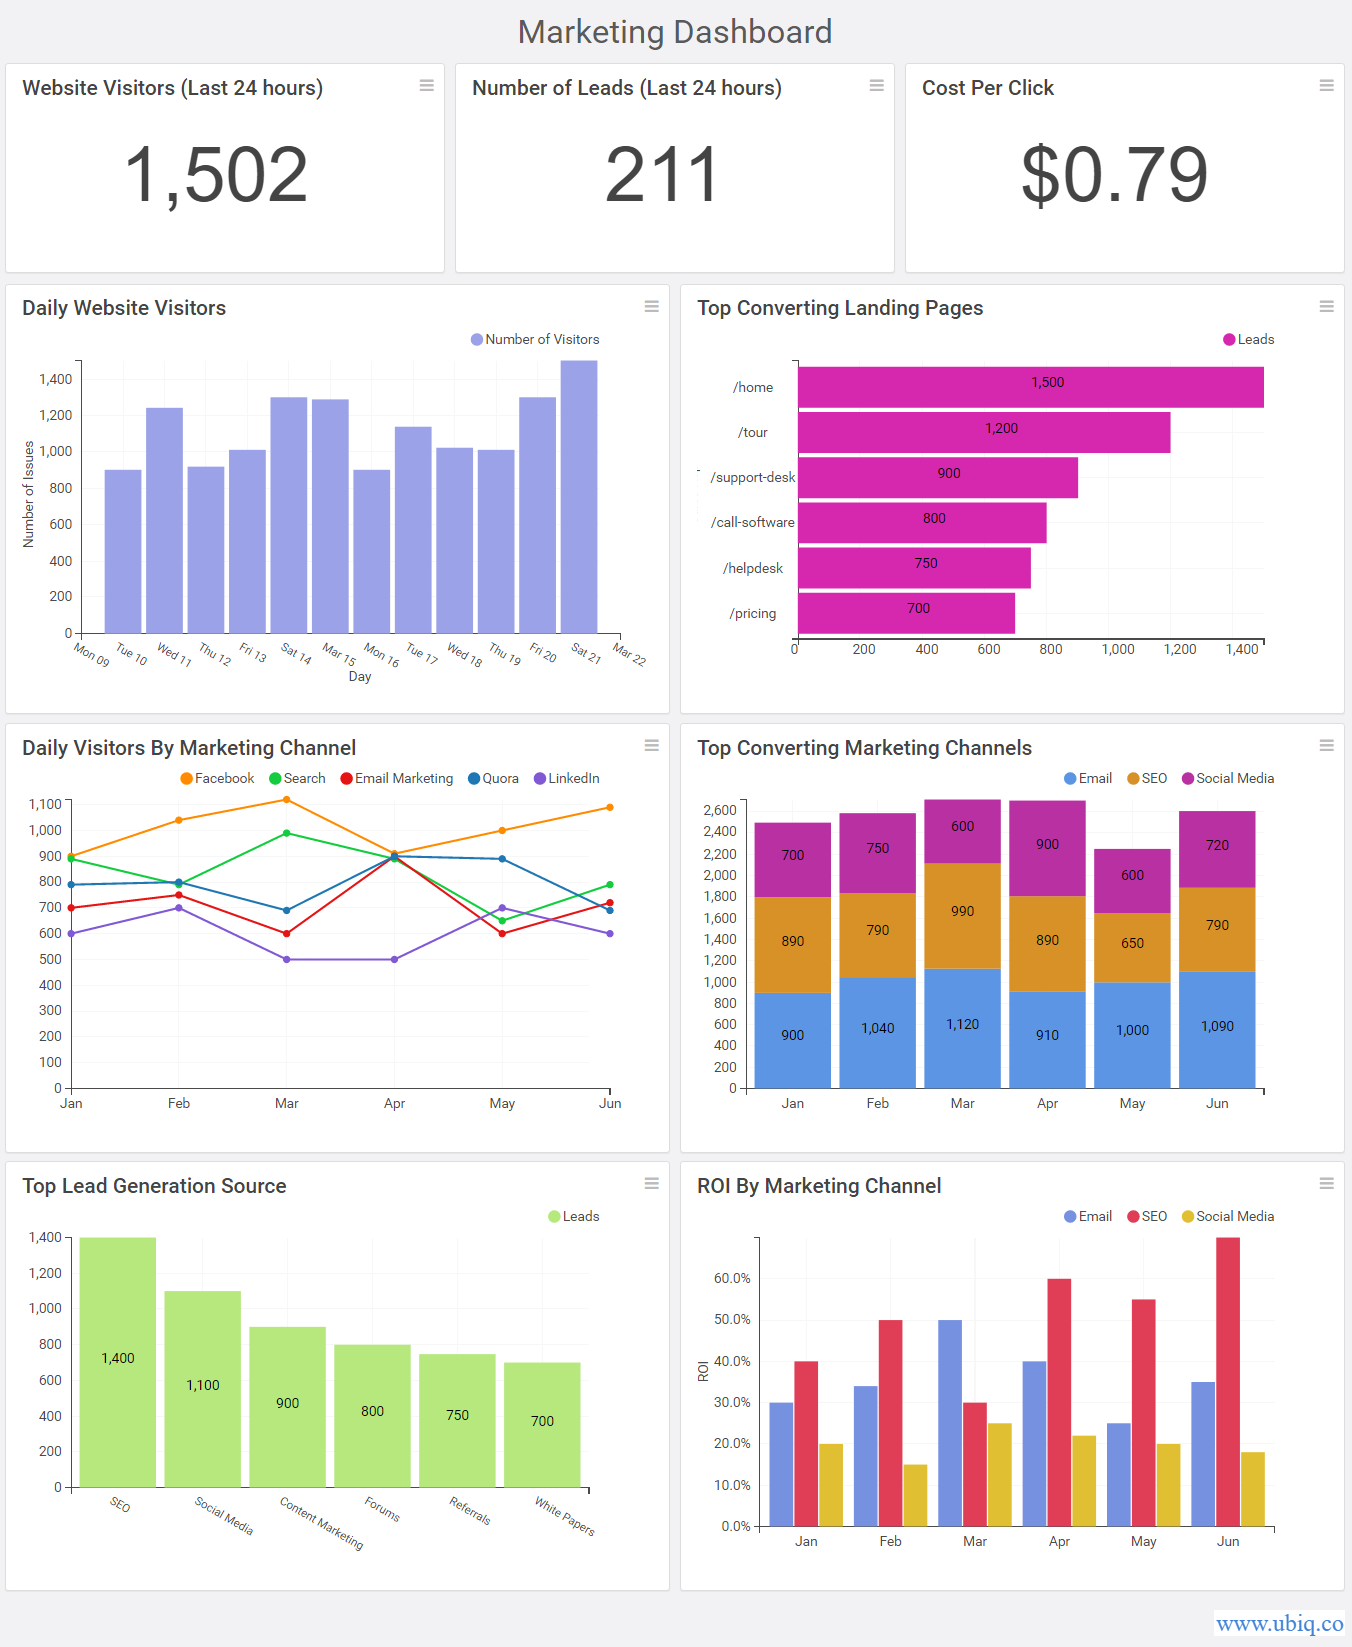 sample marketing dashboard in ubiq